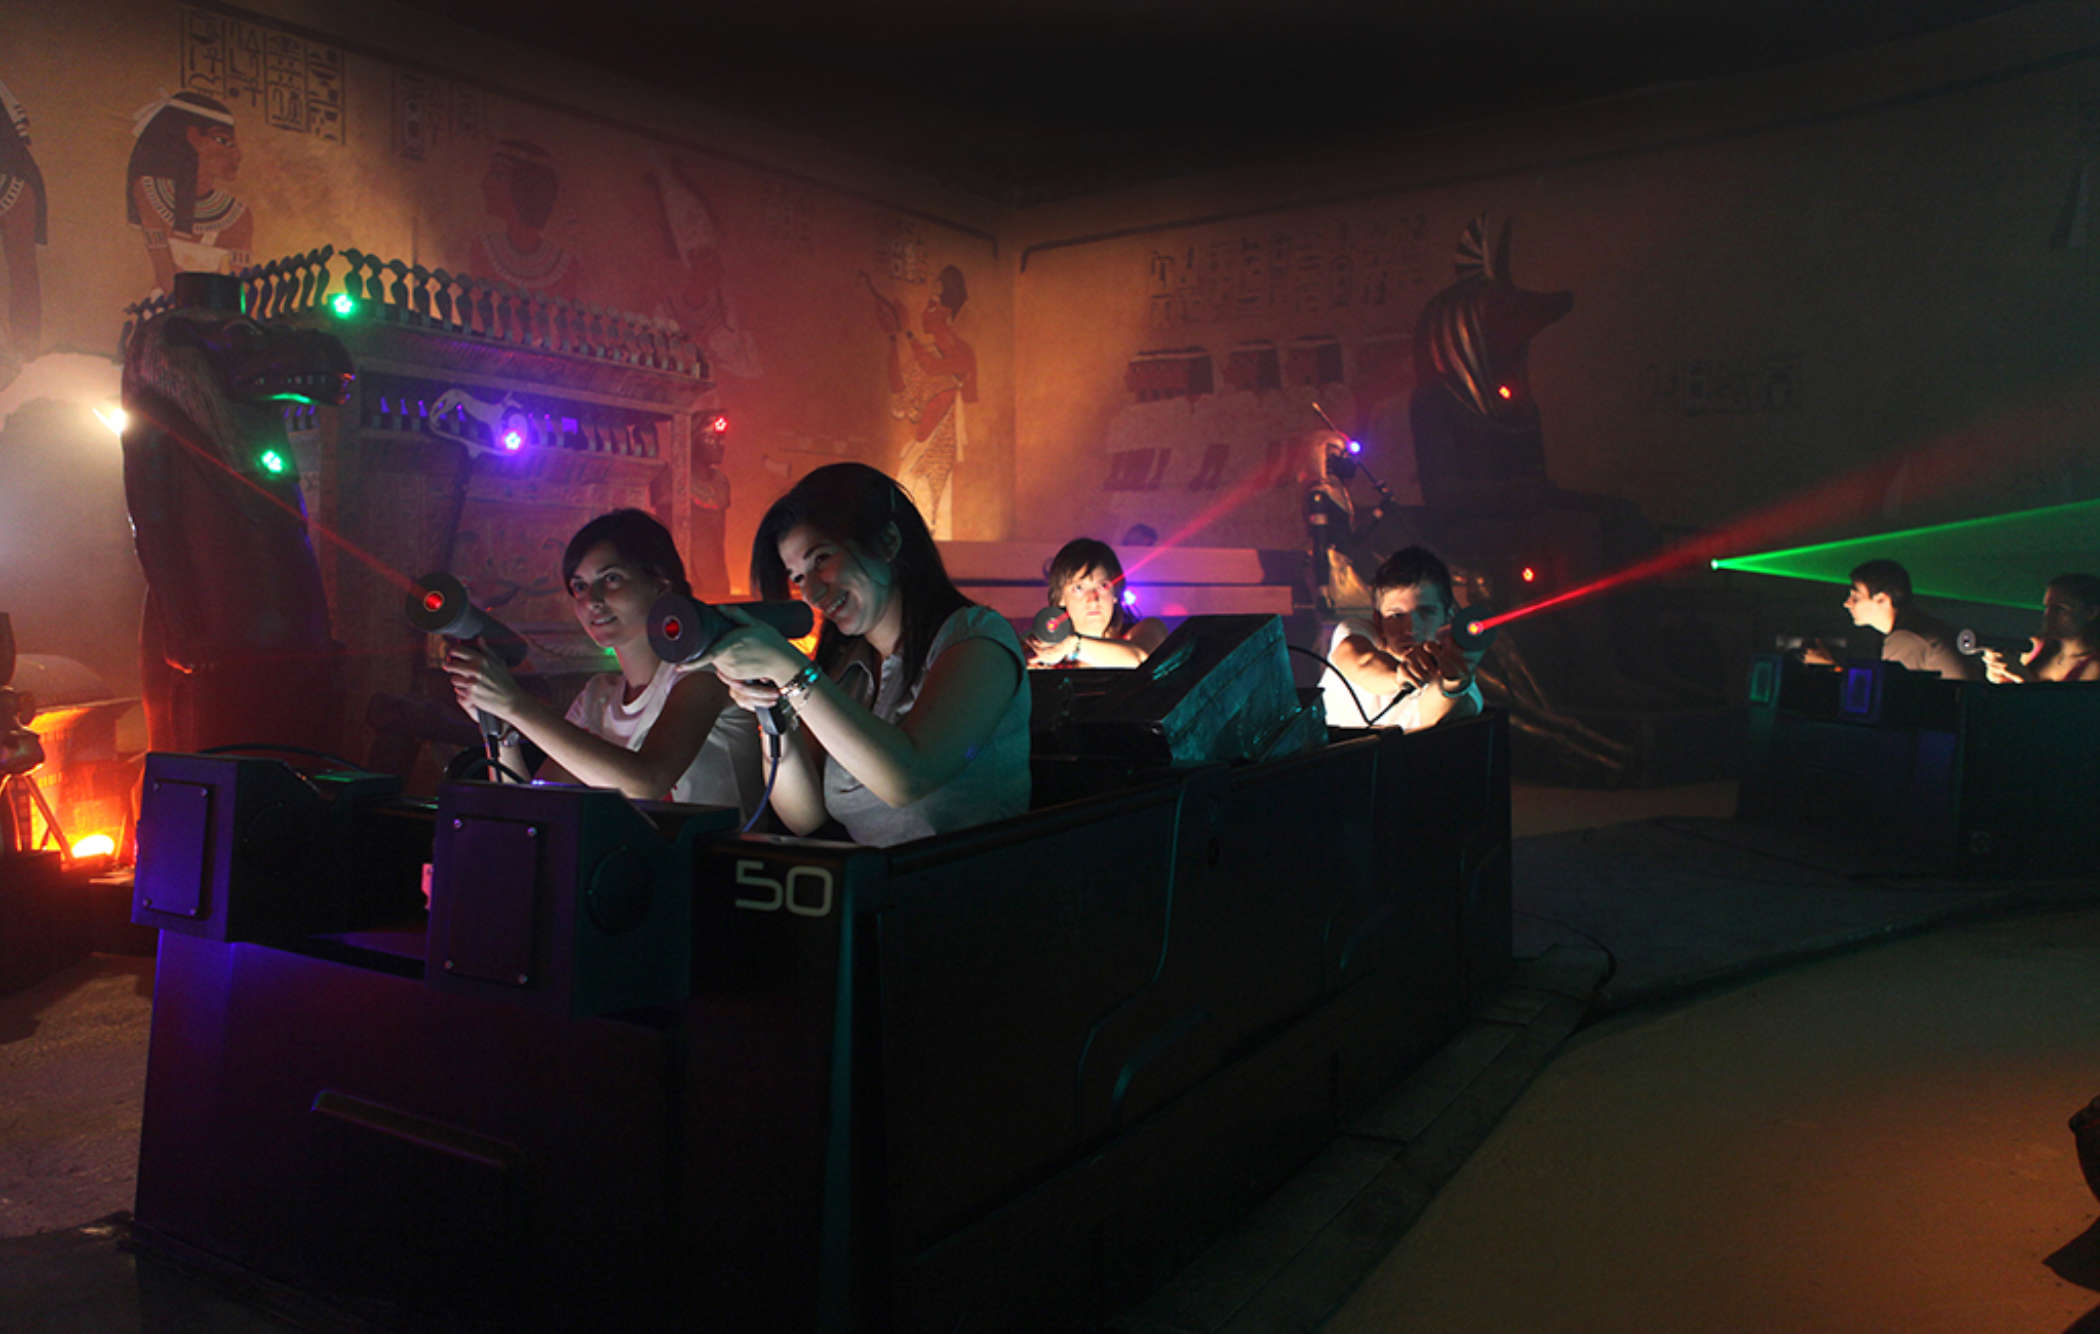 Traditional Dark Ride